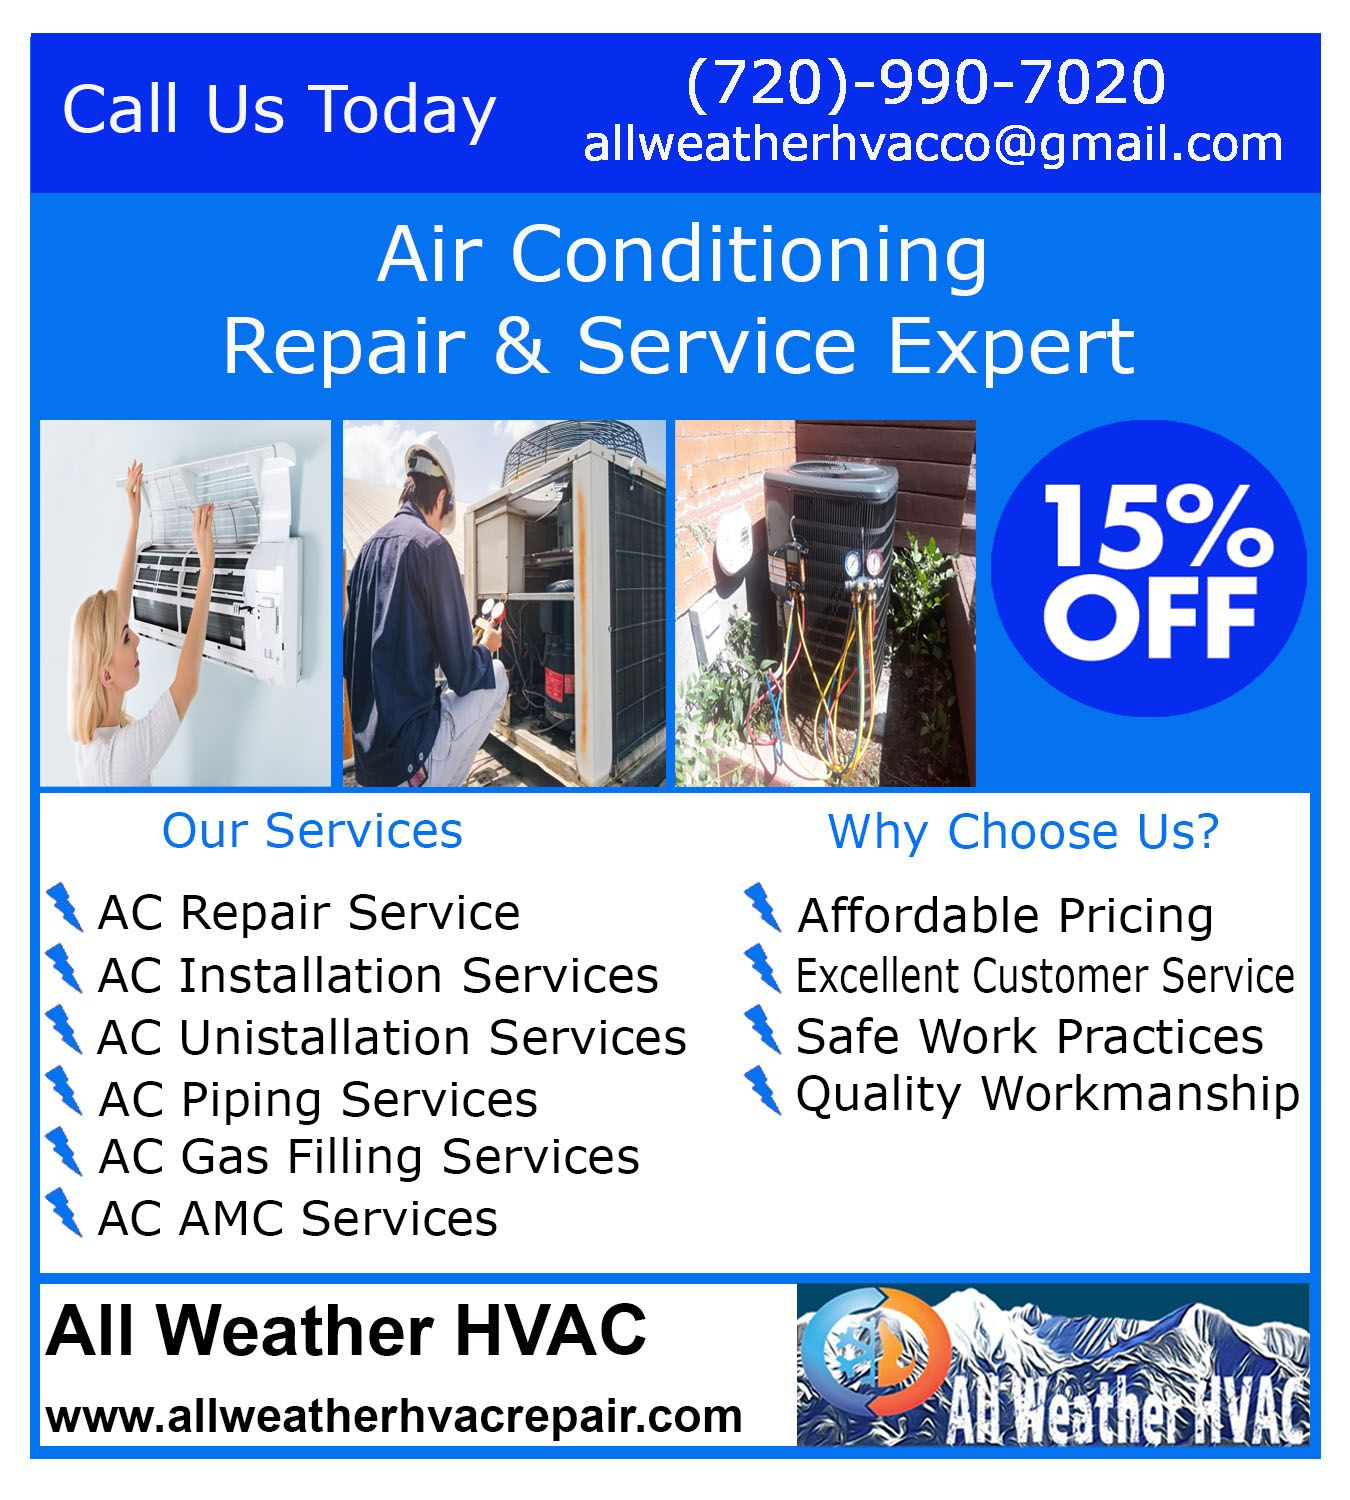 Hvac Repair In 2020 Hvac Air Conditioning Hvac Repair Air Conditioning Repair